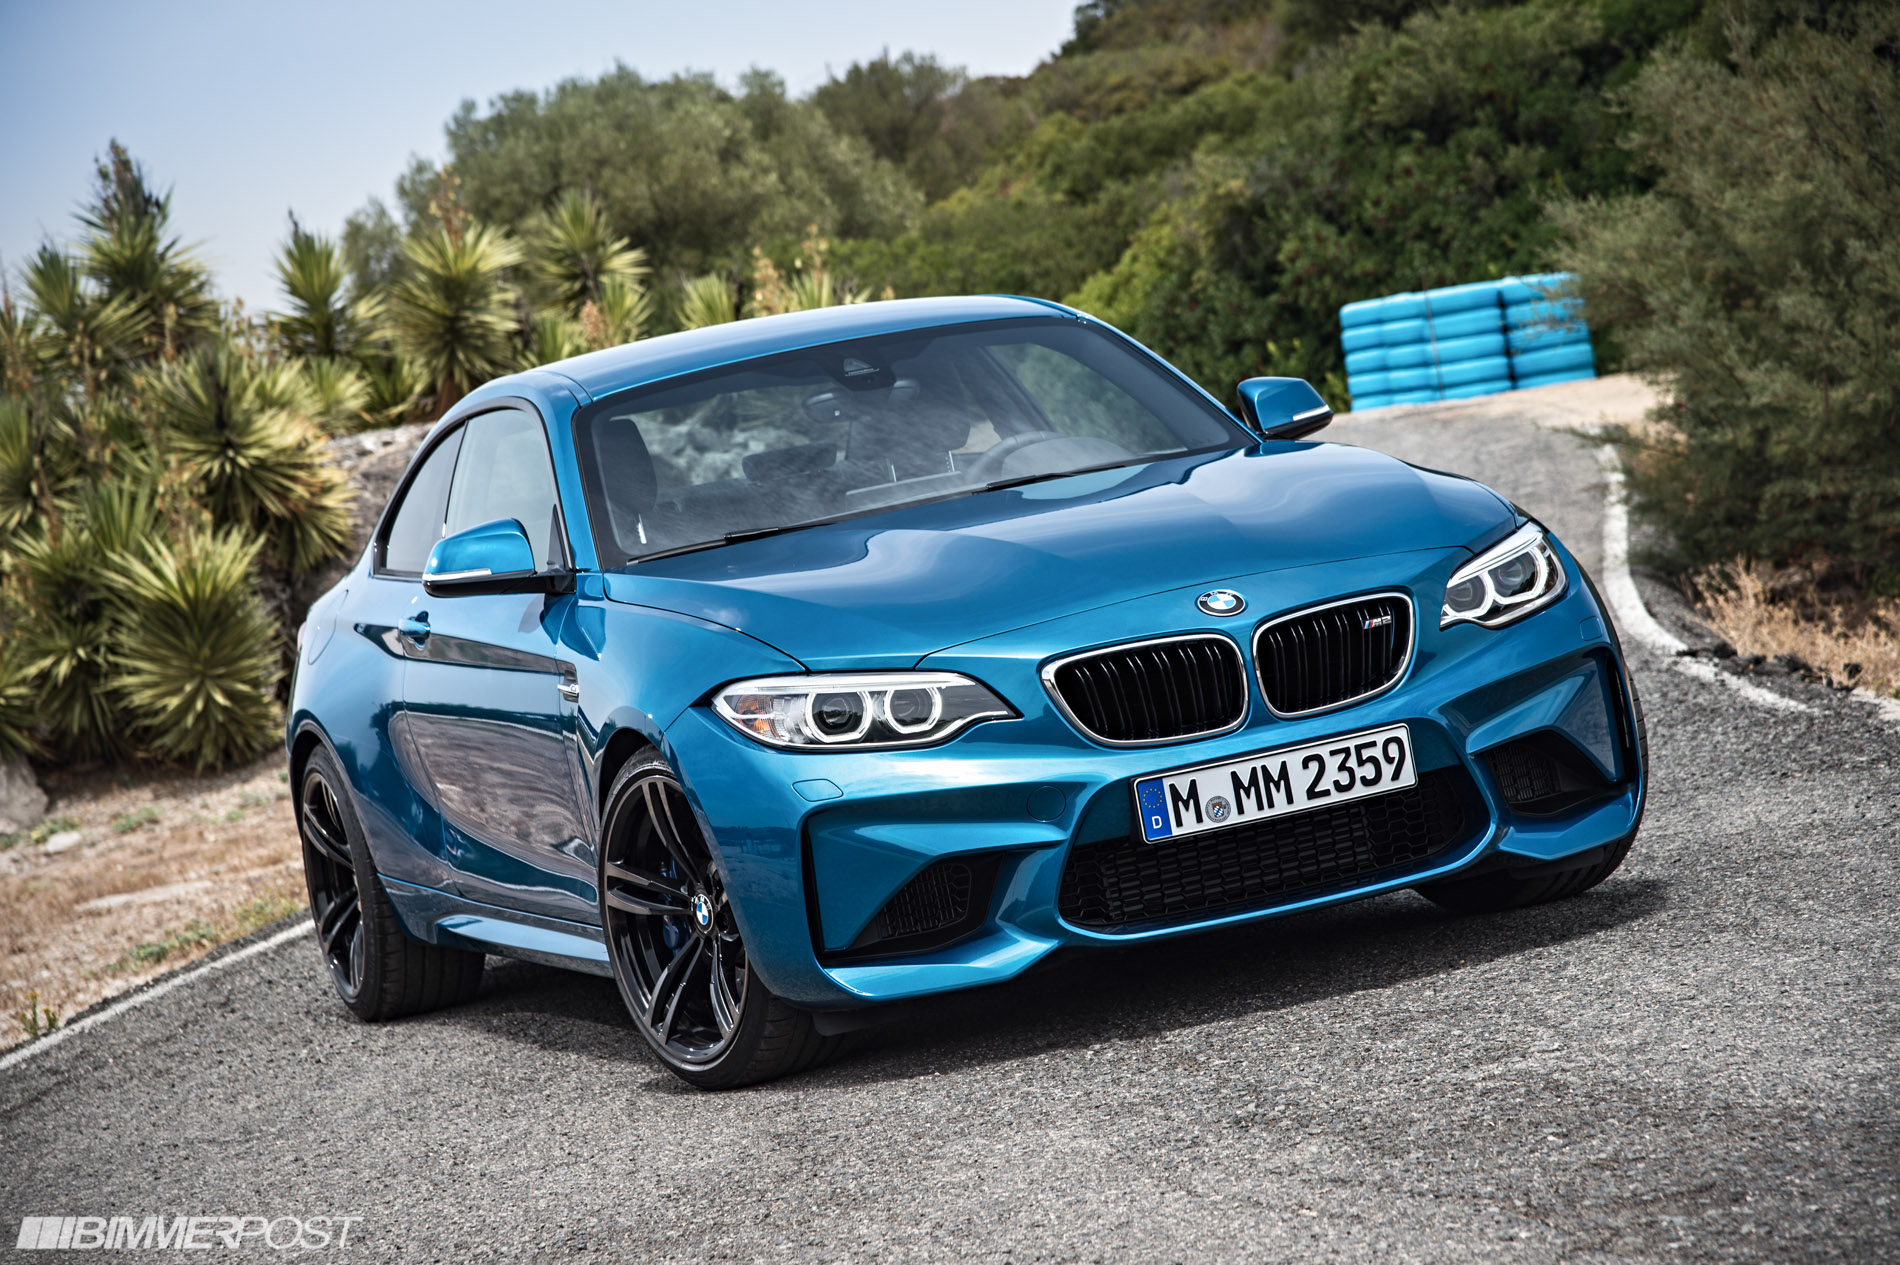 2016 - [BMW] M2 [F87] - Page 7 P90199658_highRes